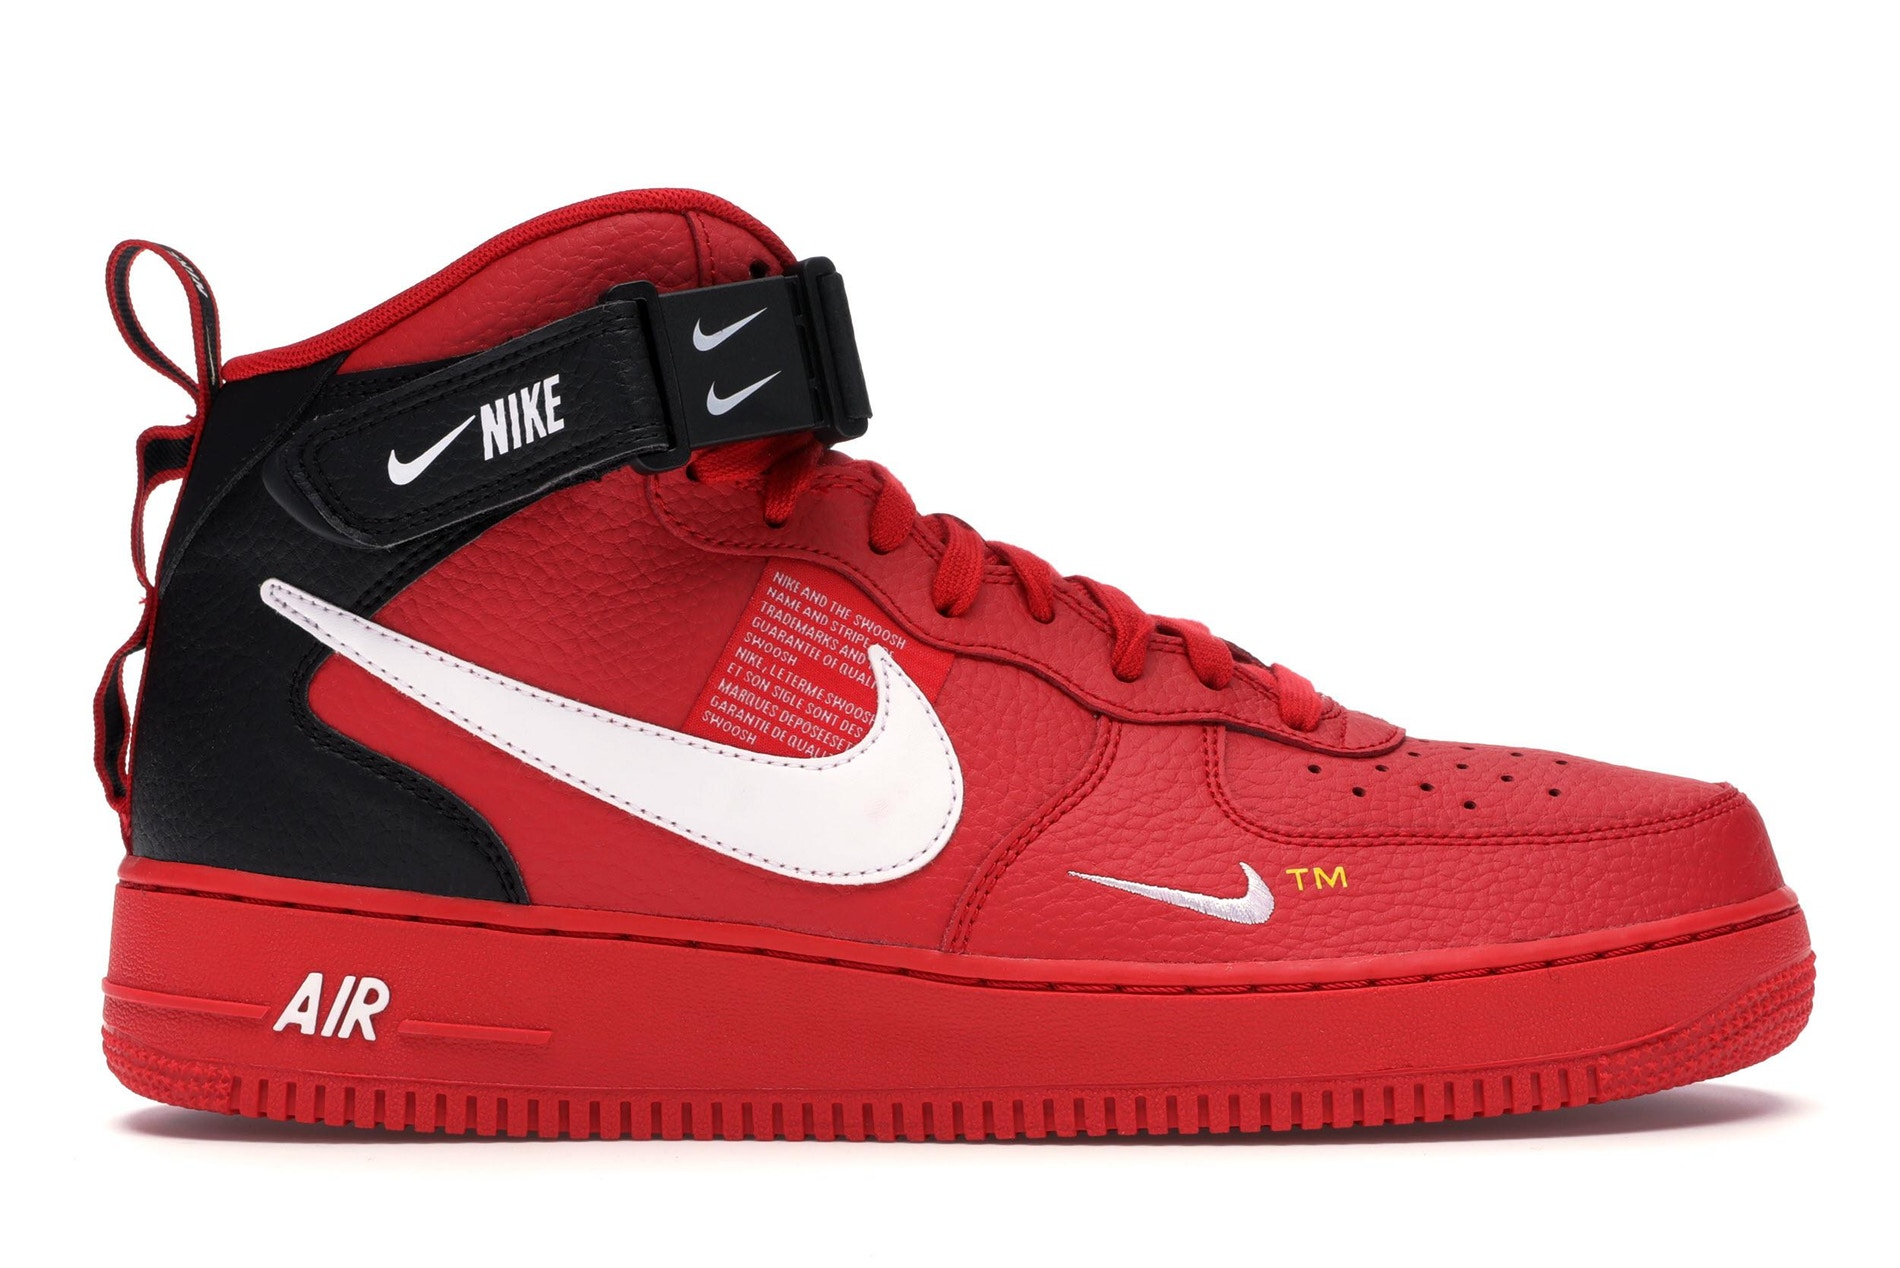 Nike Air Force 1 Mid Utility University Red - 804609-605